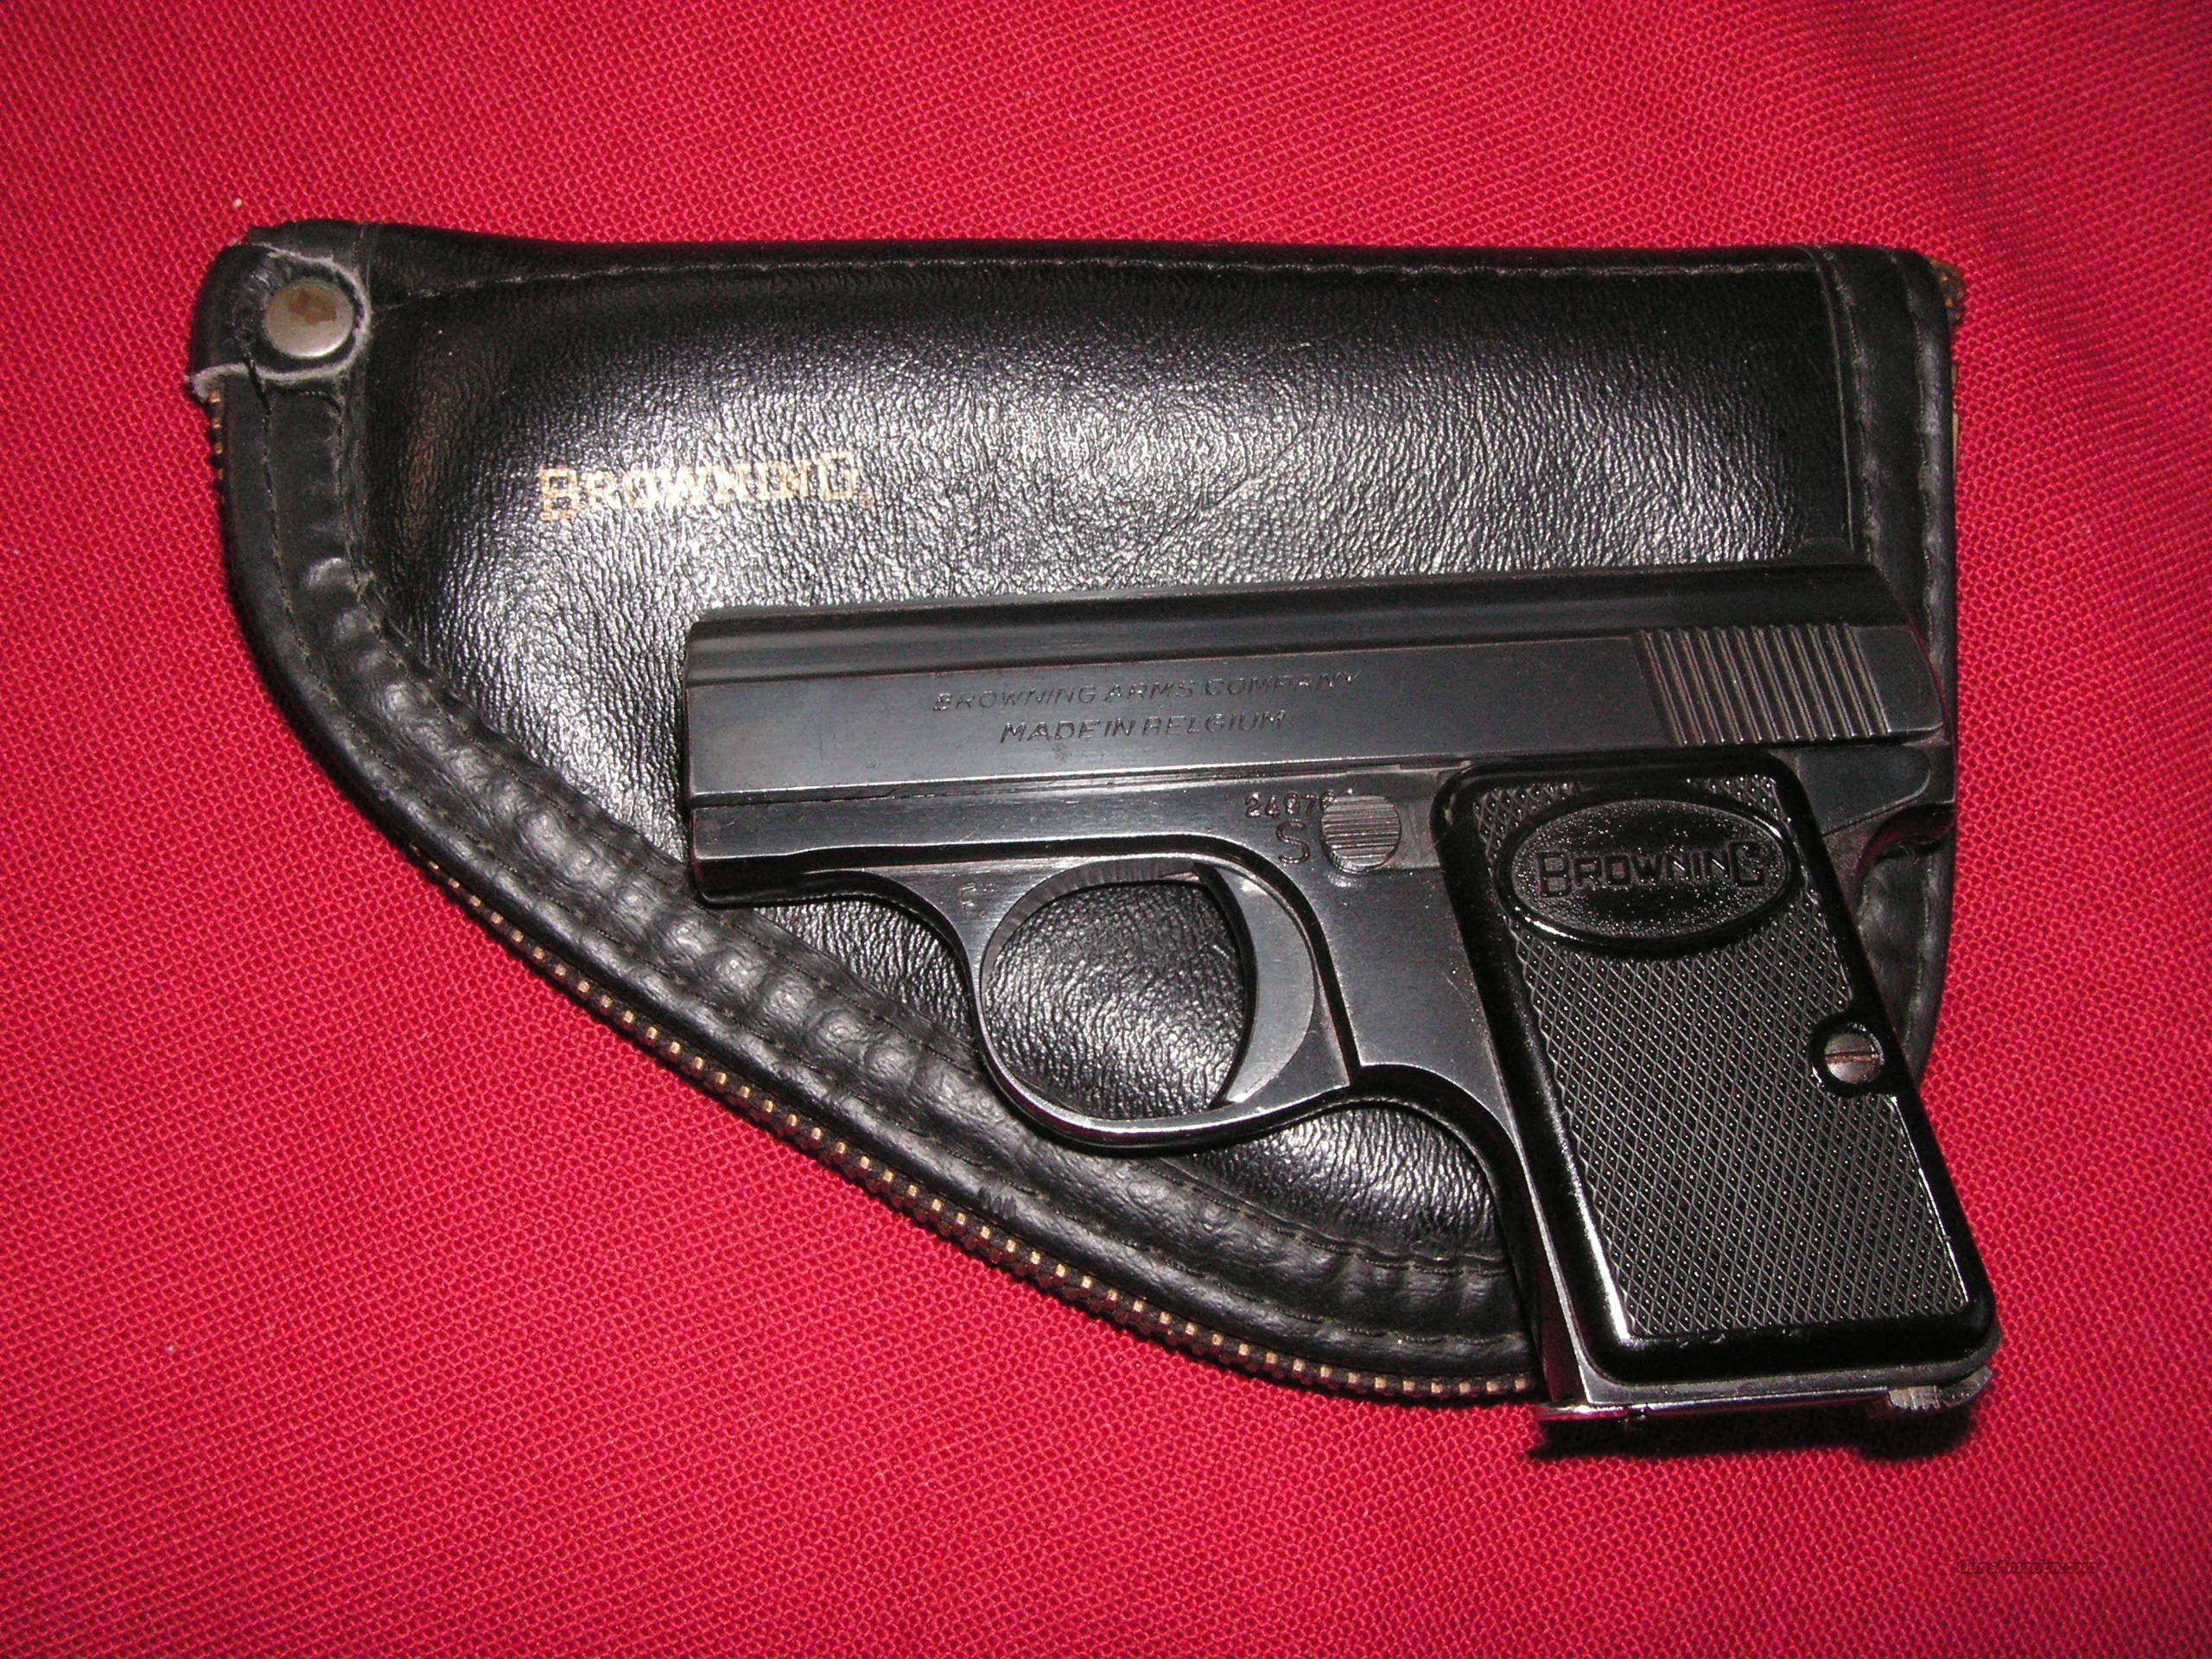 """BABY"" BROWNING CA. 25ACP IN POUCH  Guns > Pistols > Browning Pistols > Baby Browning"